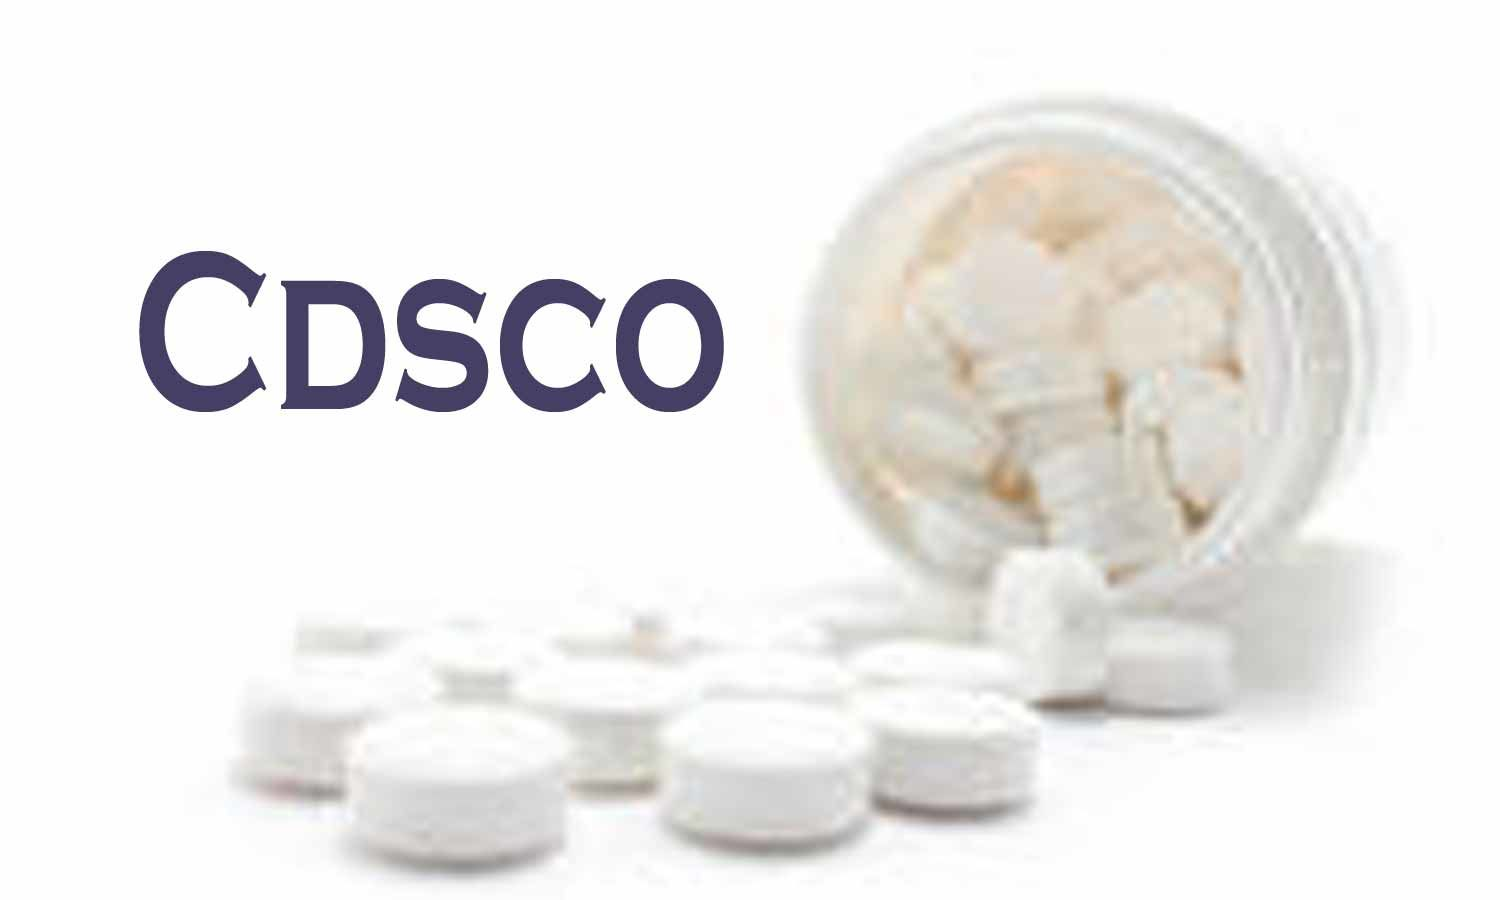 CDSCO directs to mark Doping Drug Labels with either vertical Orange line or line of any other colour: Report